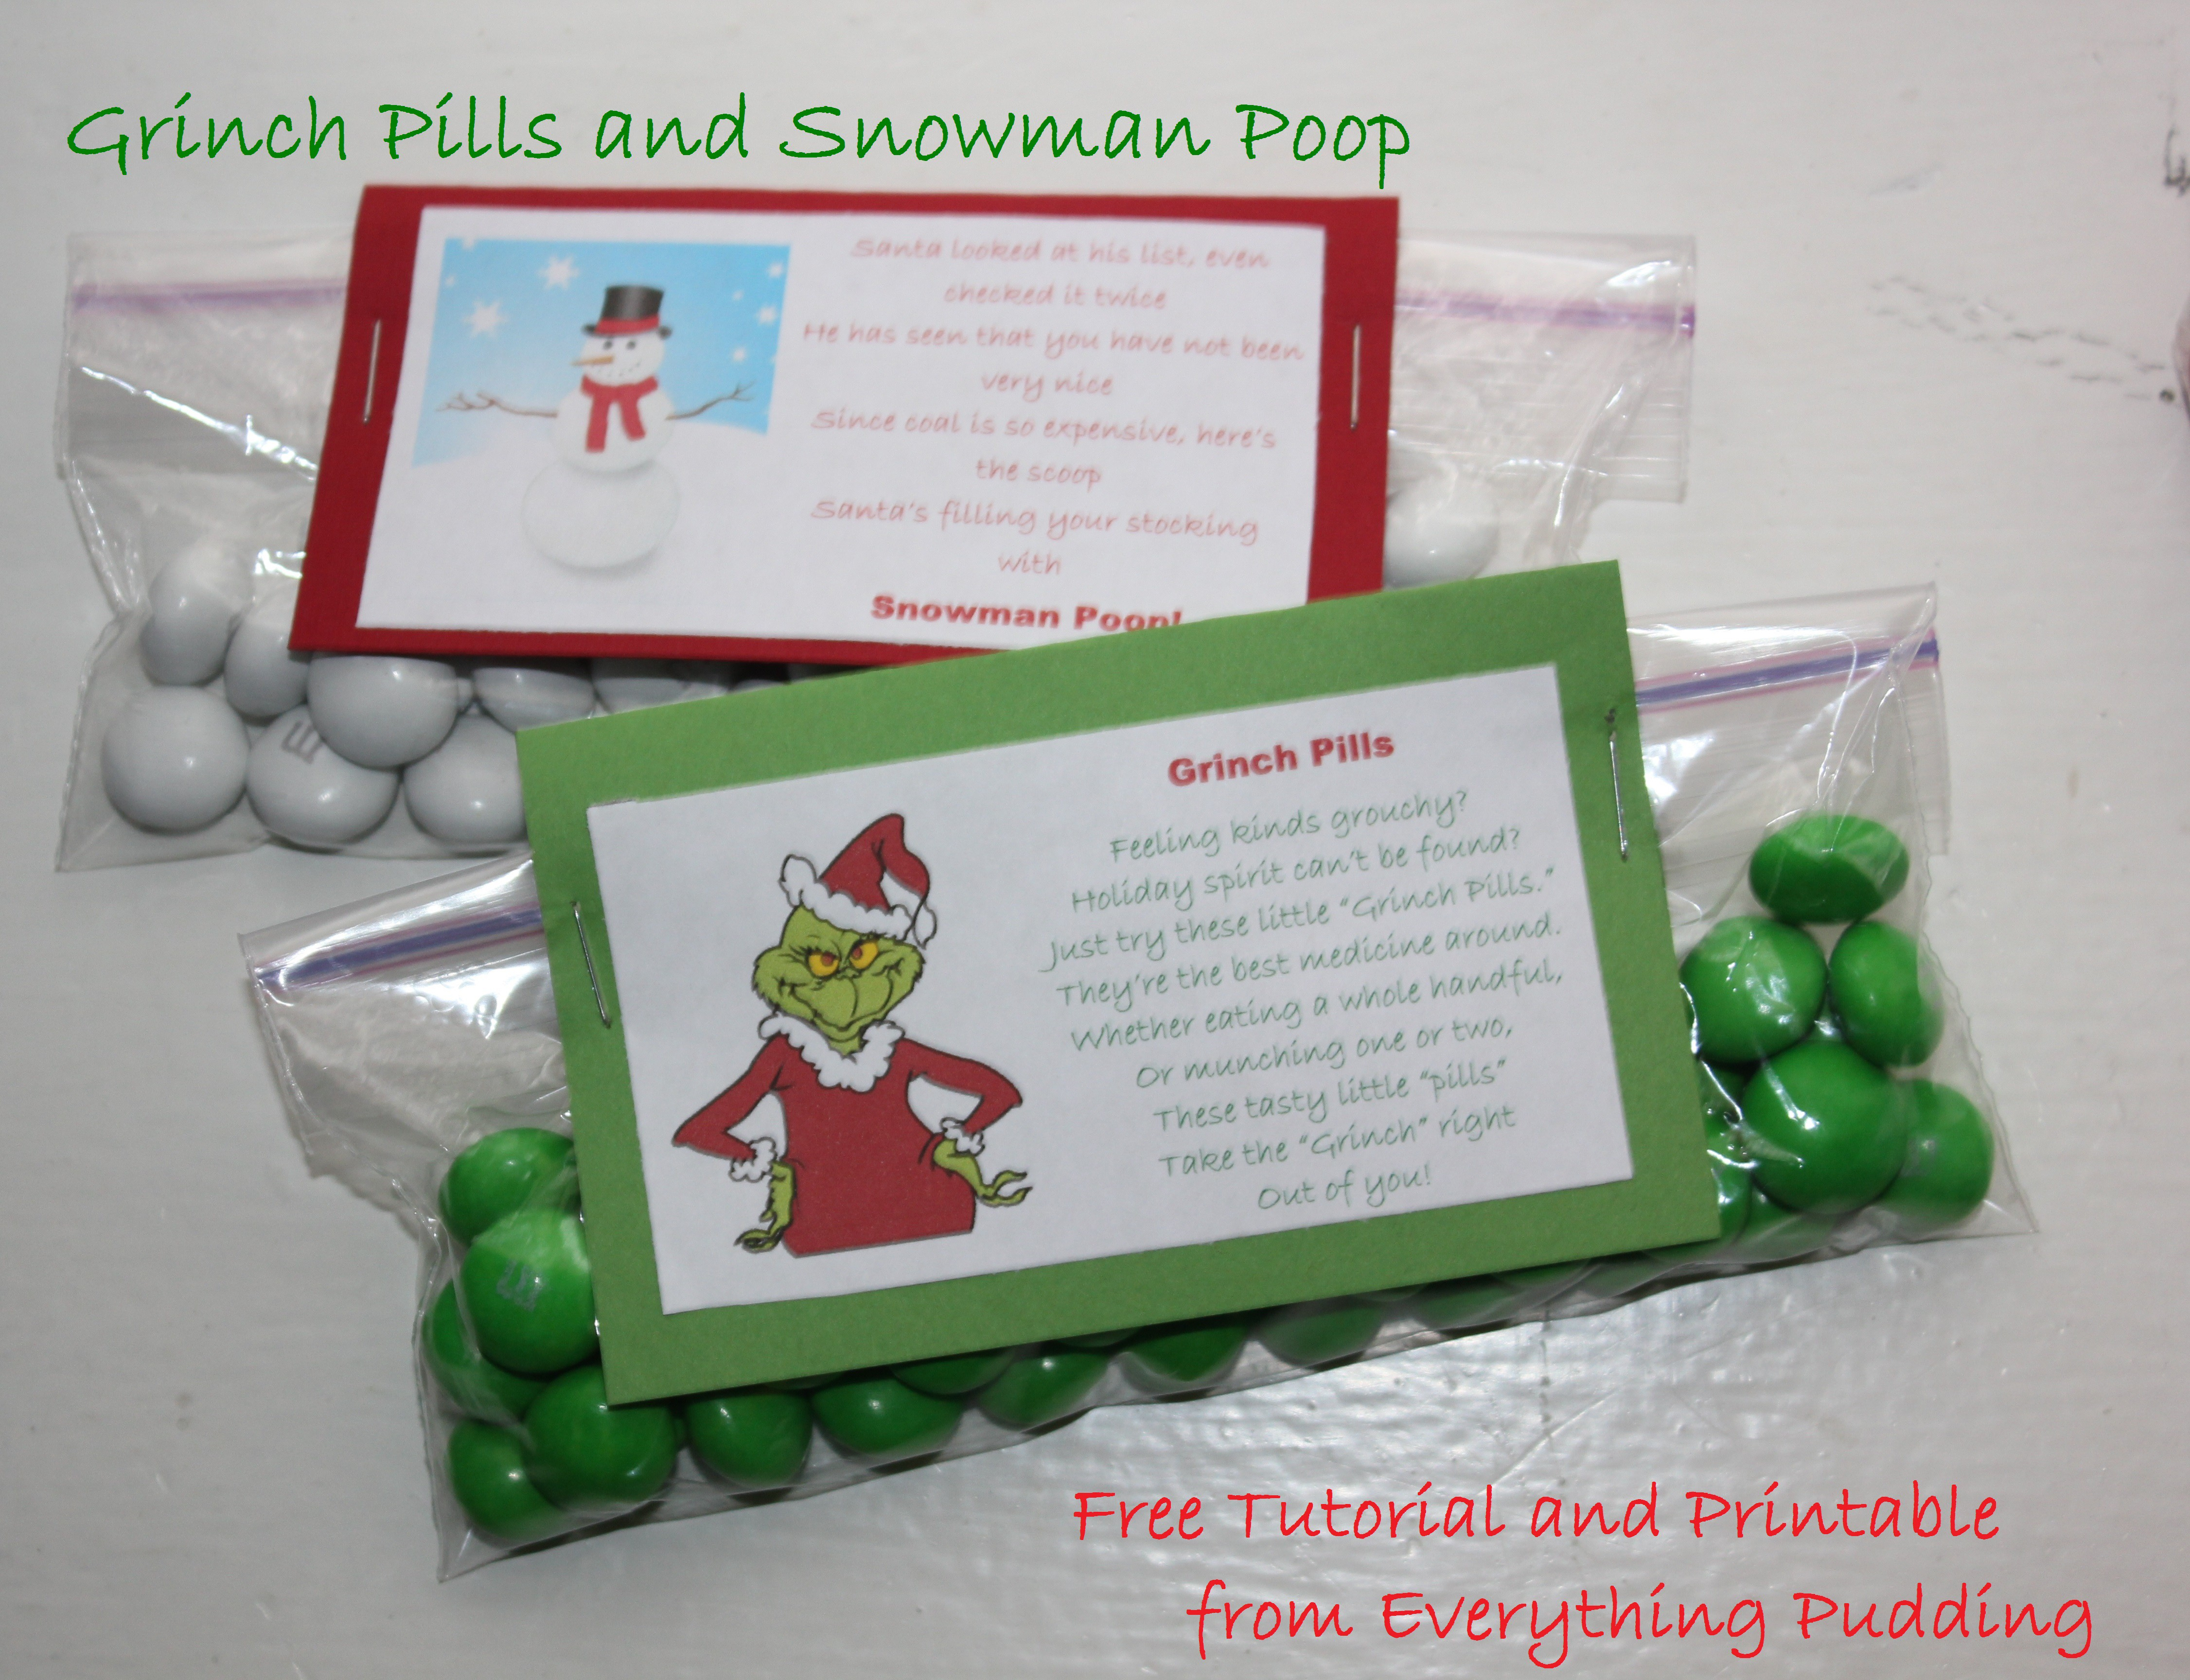 Tutorial-Grinch Pills And Snowman Poop (Christmas Wrap-Up #1 - Grinch Pills Free Printable